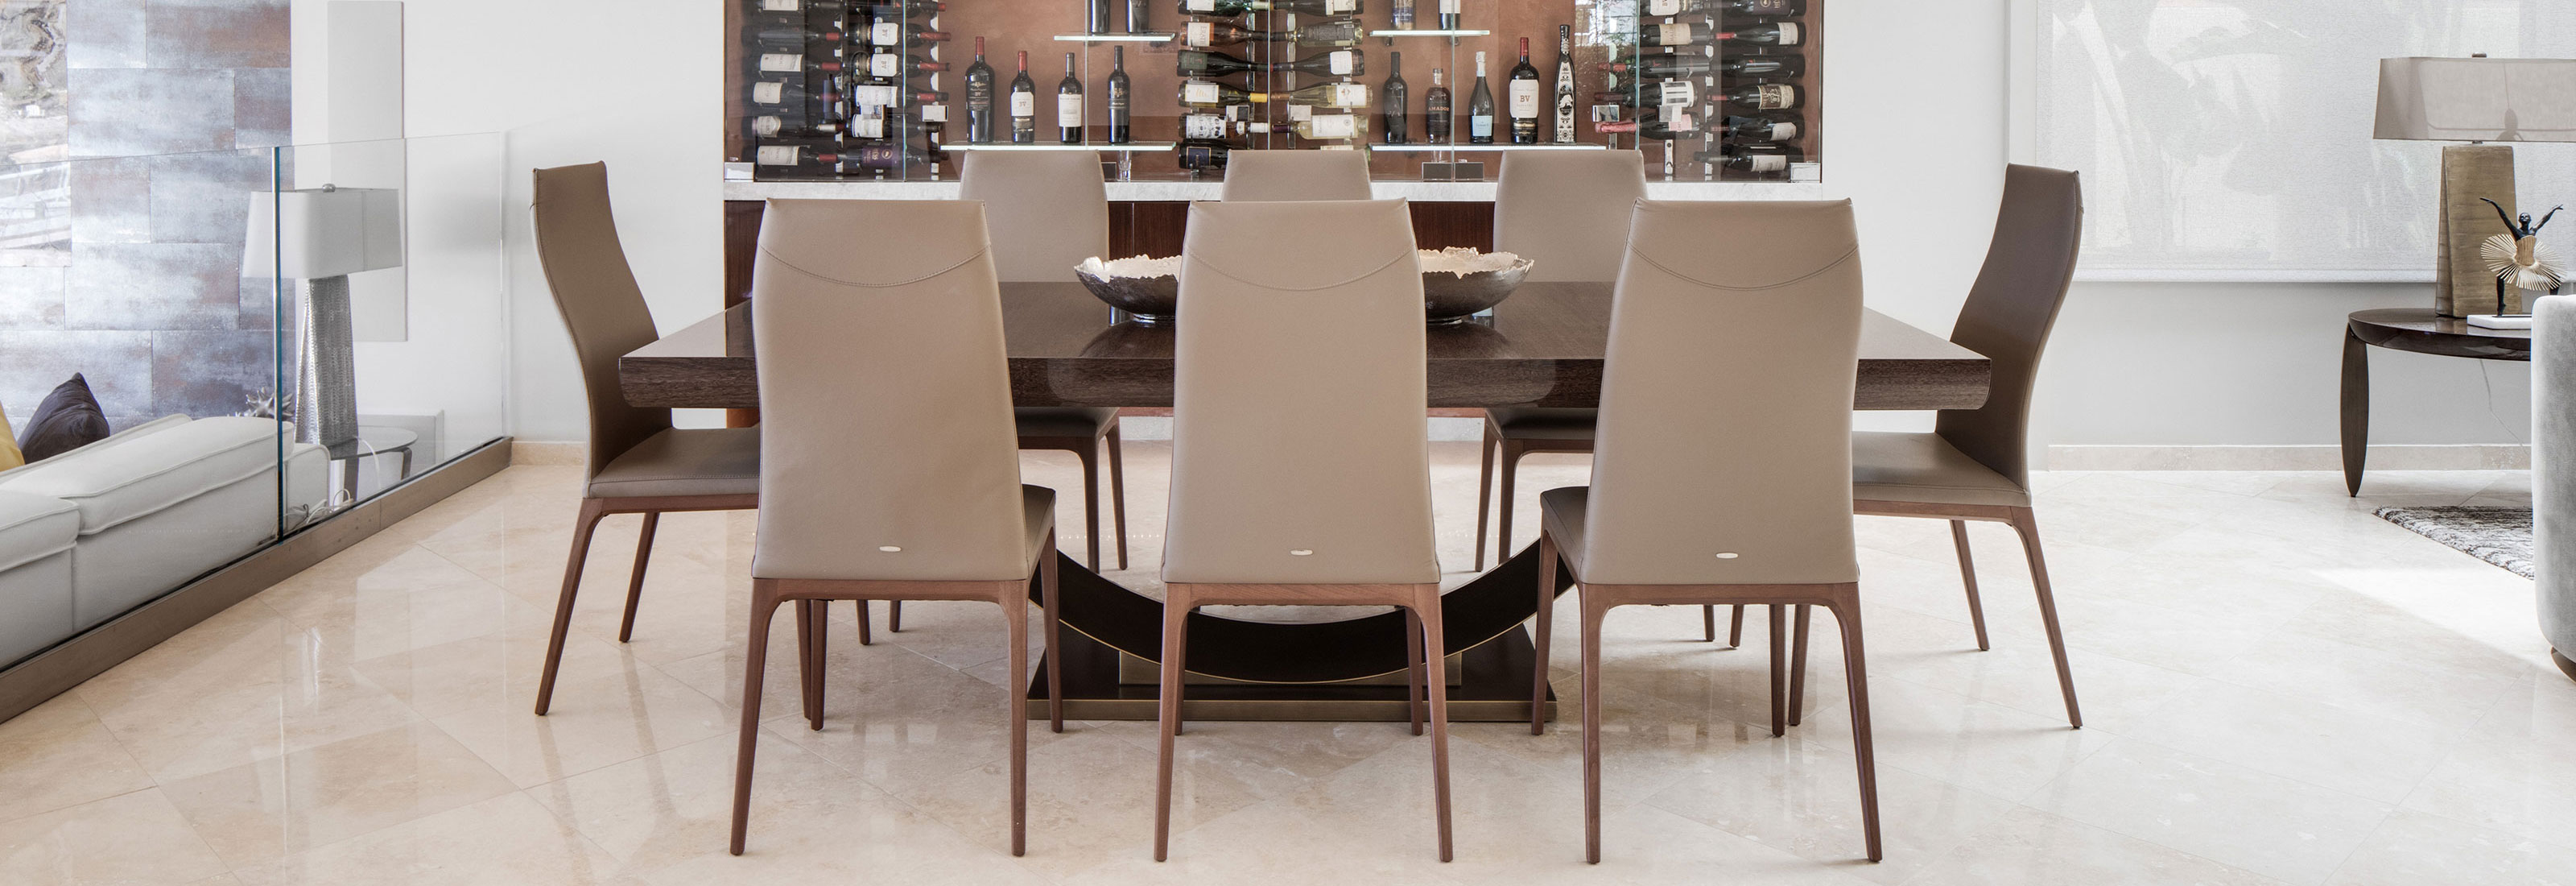 Cantoni Modern And Contemporary Furniture